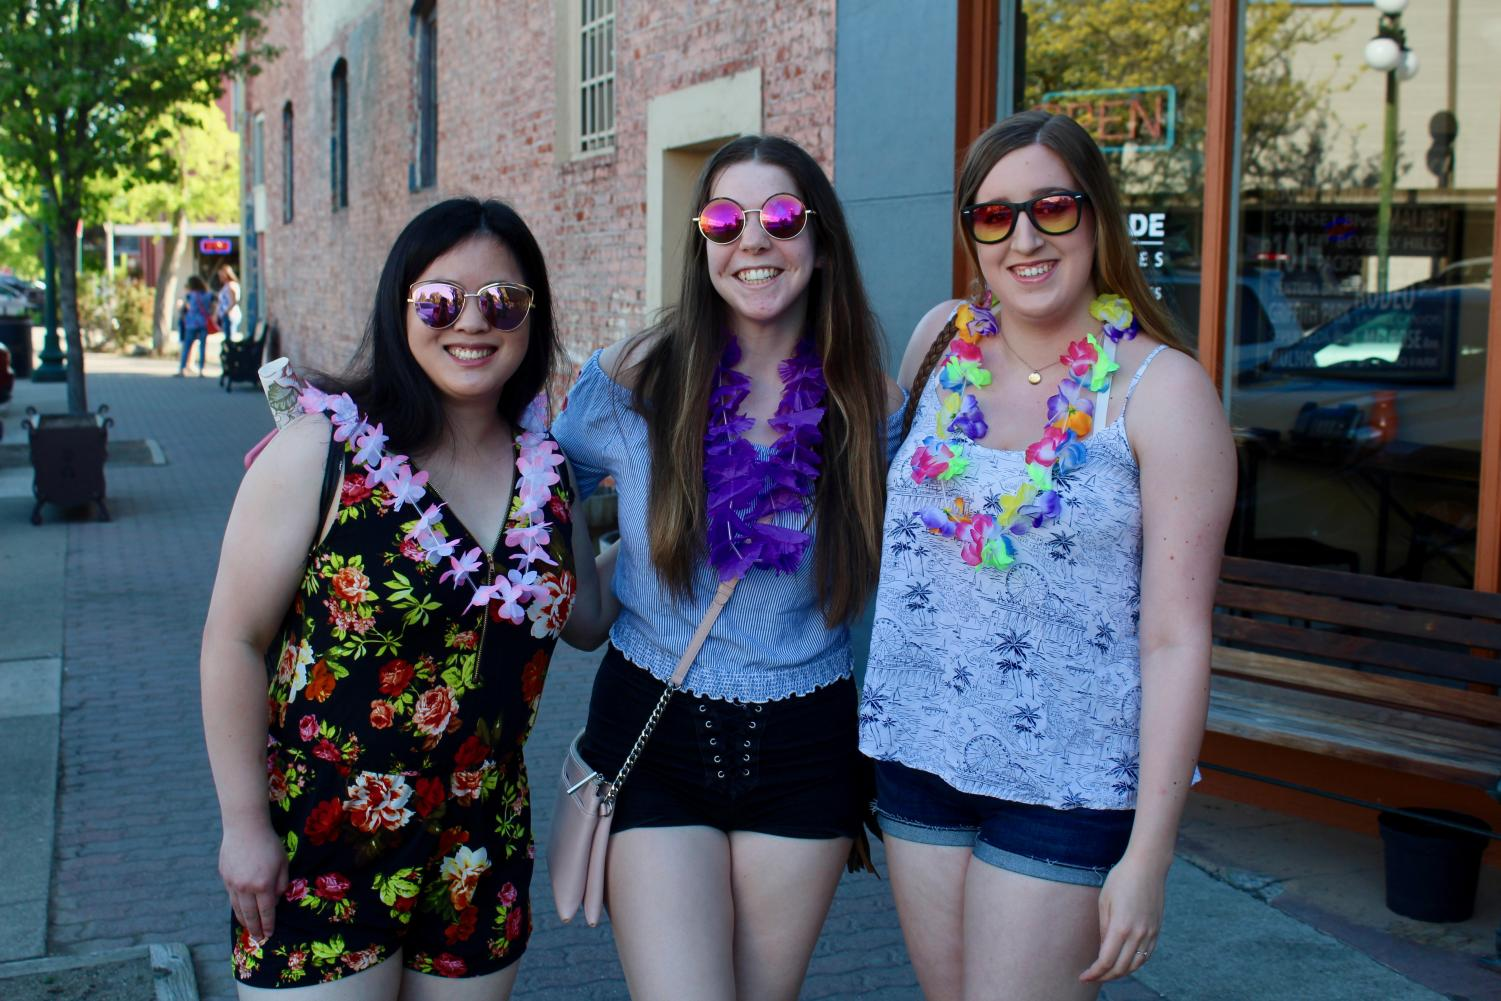 This spring Girls Night Out had a Luau theme. Participating businesses offered leis and Hawaiian-themed beverages. The event is put on twice a year to showcase women in the community as well as local businesses.